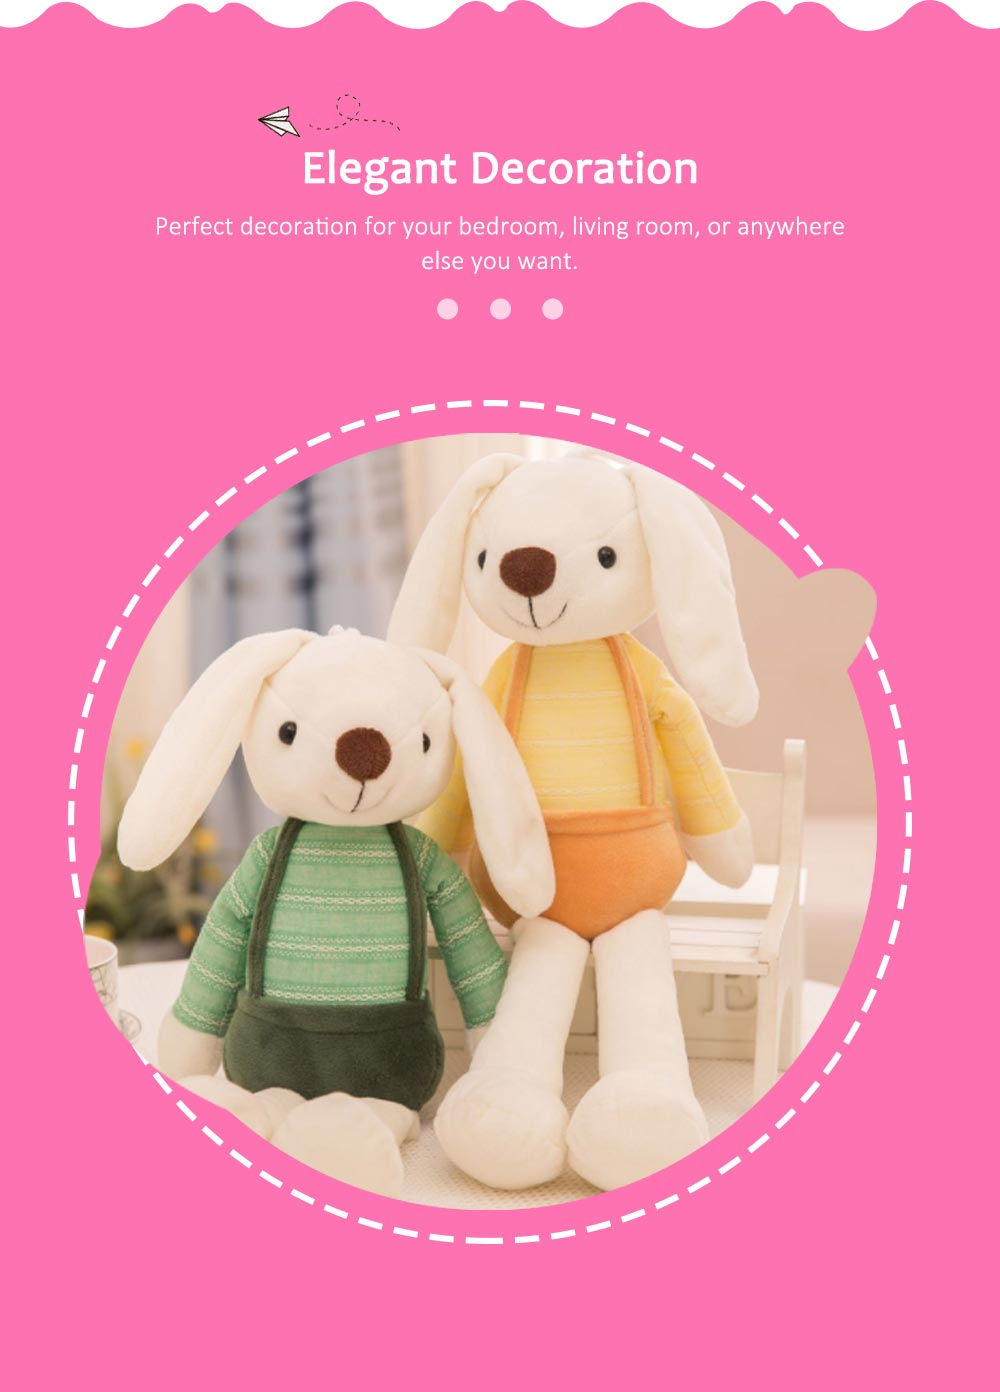 Sugar Candy Rabbit Plush Toy, Super Soft Cuddly Figures for Kids Gift Party Favors 6